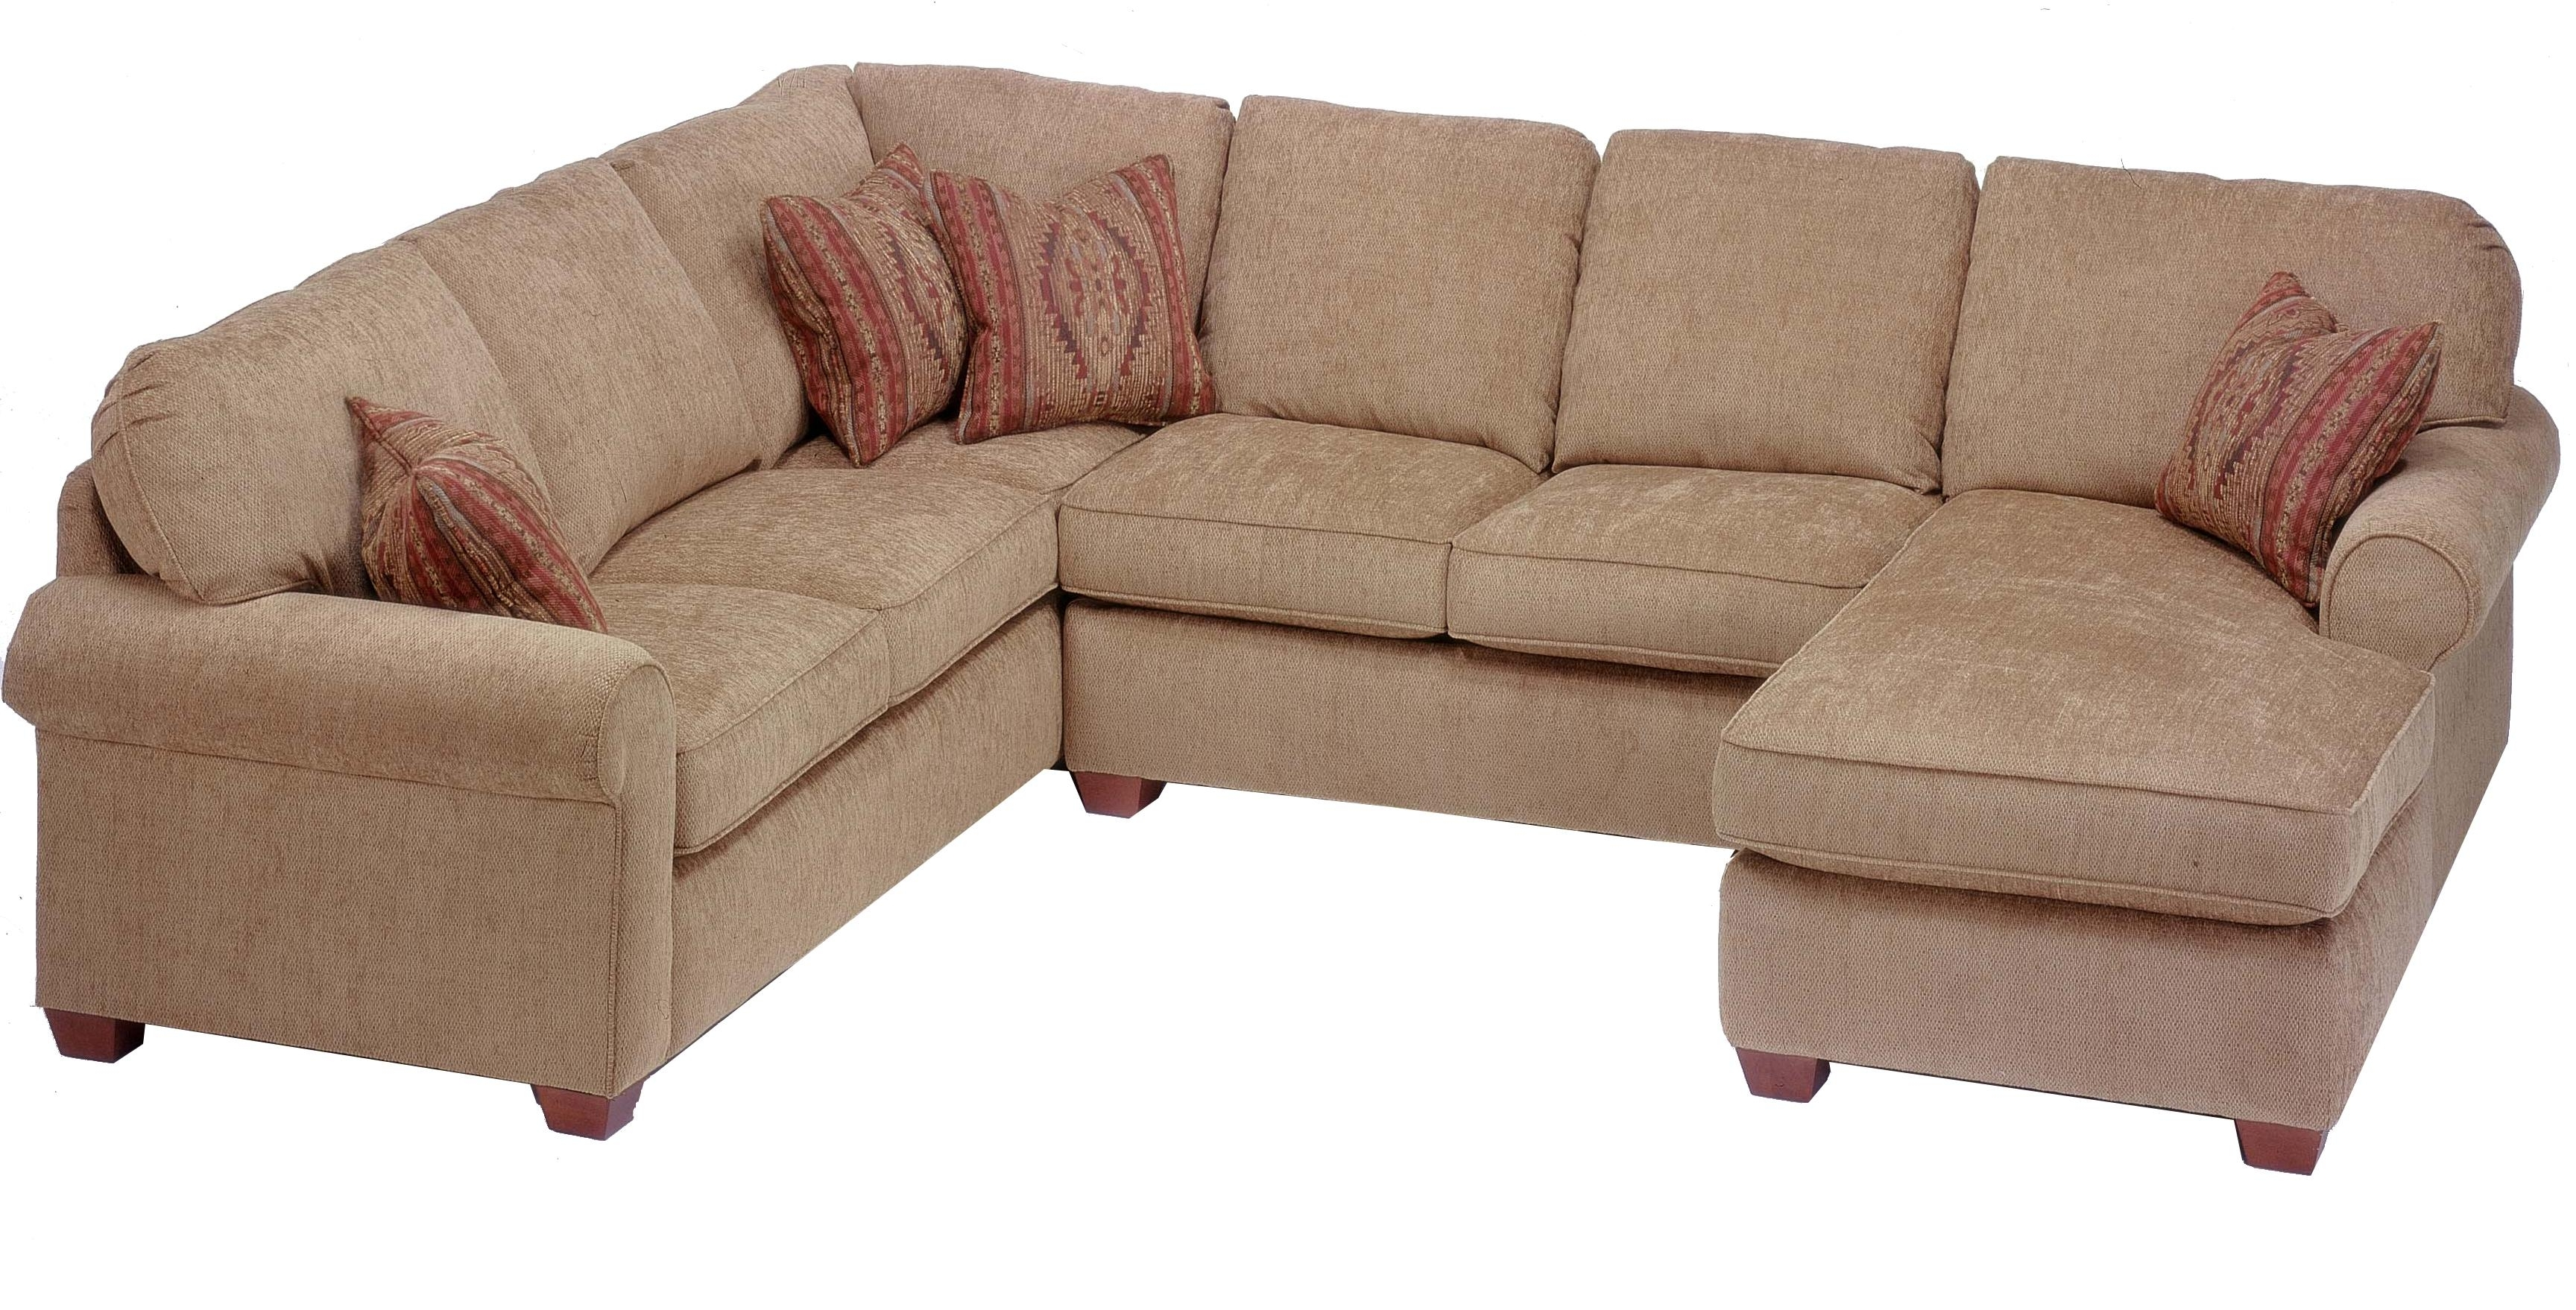 Favorite Flexsteel Thornton 3 Piece Sectional With Chaise – Ahfa – Sofa Intended For Homemakers Sectional Sofas (View 8 of 20)